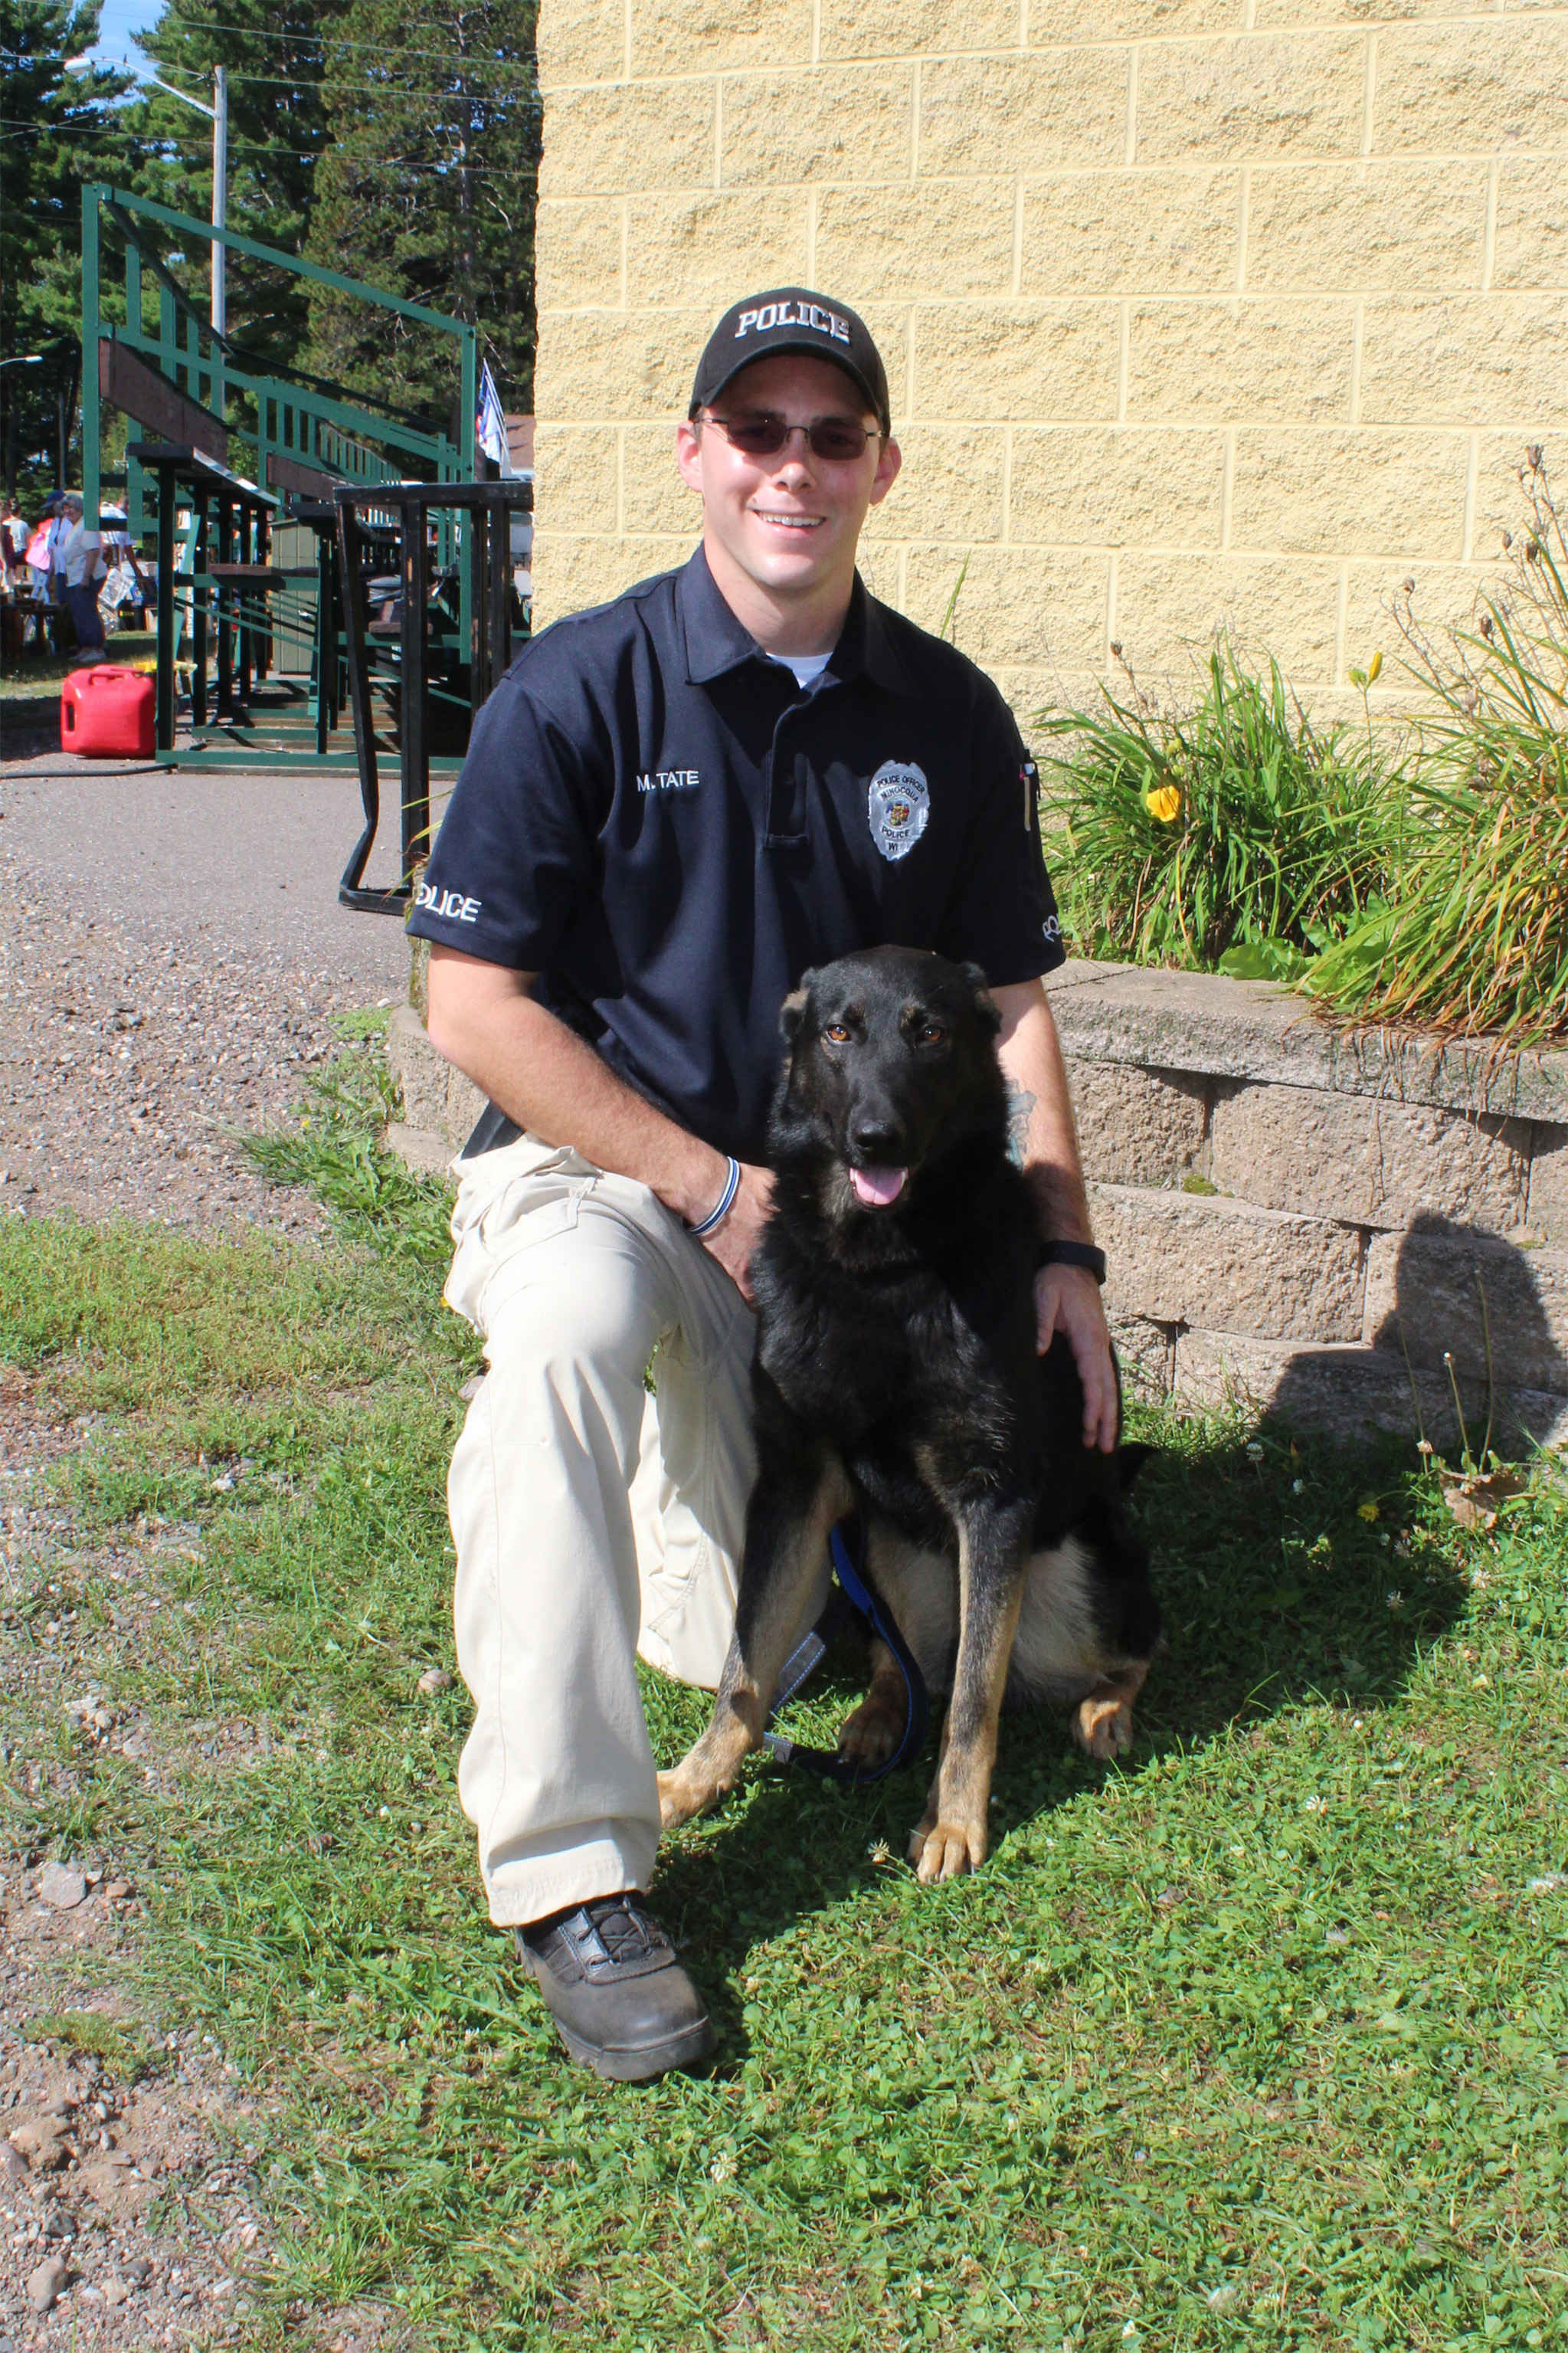 Officer Matthew Tate with his K9 partner, Jennings, in Lake Tomahawk. Kim Johnson photo